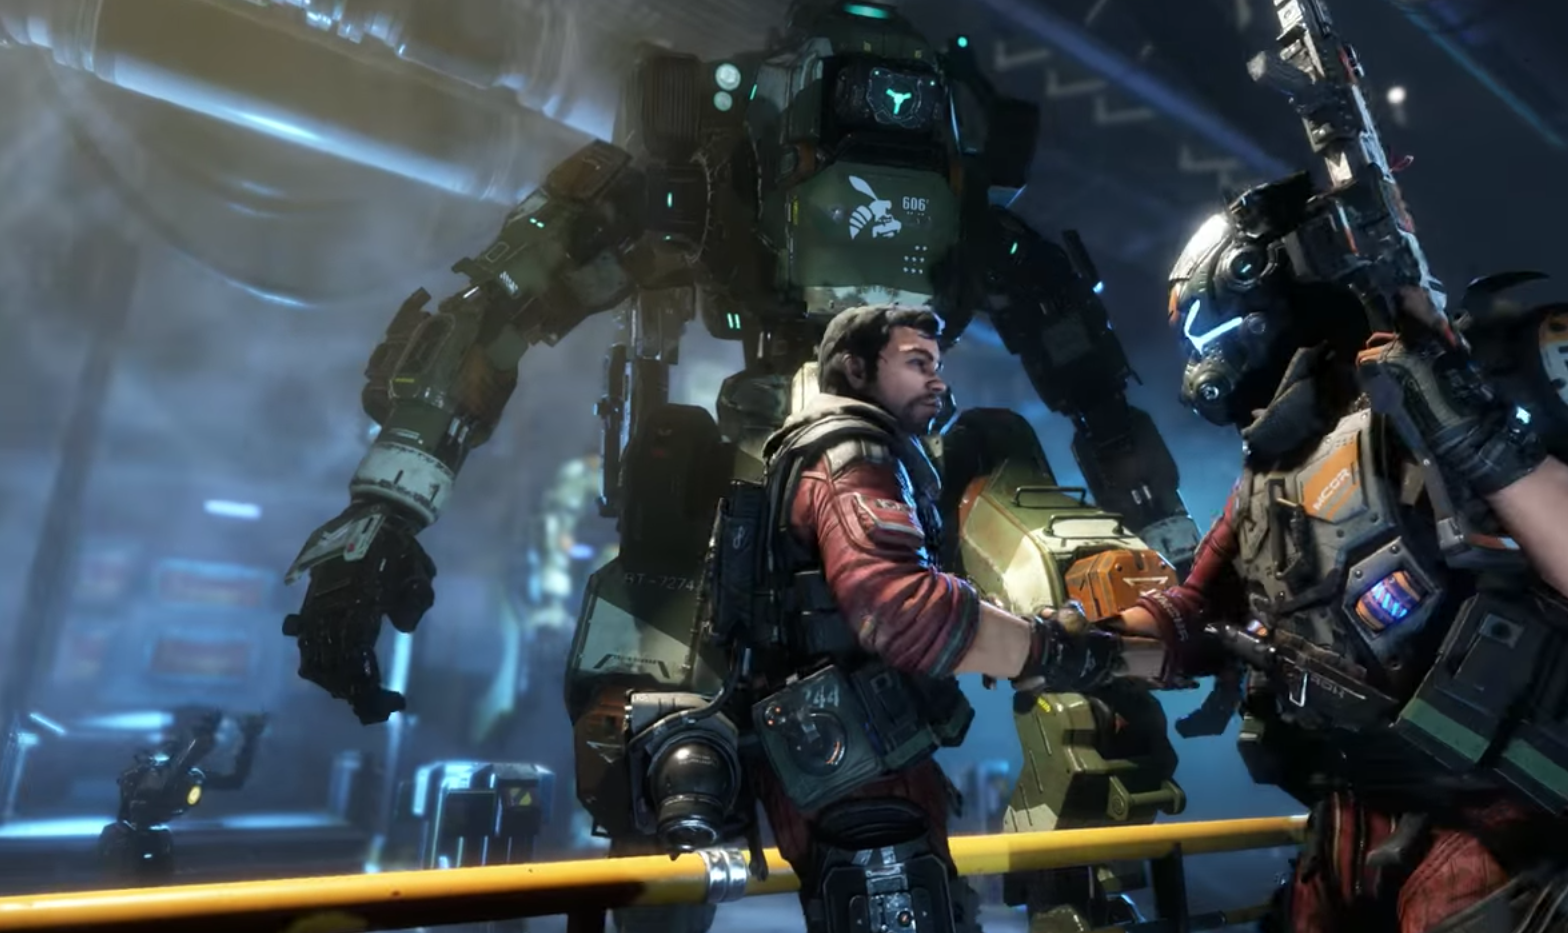 Titanfall 2 trailer provides first look at single-player story - The